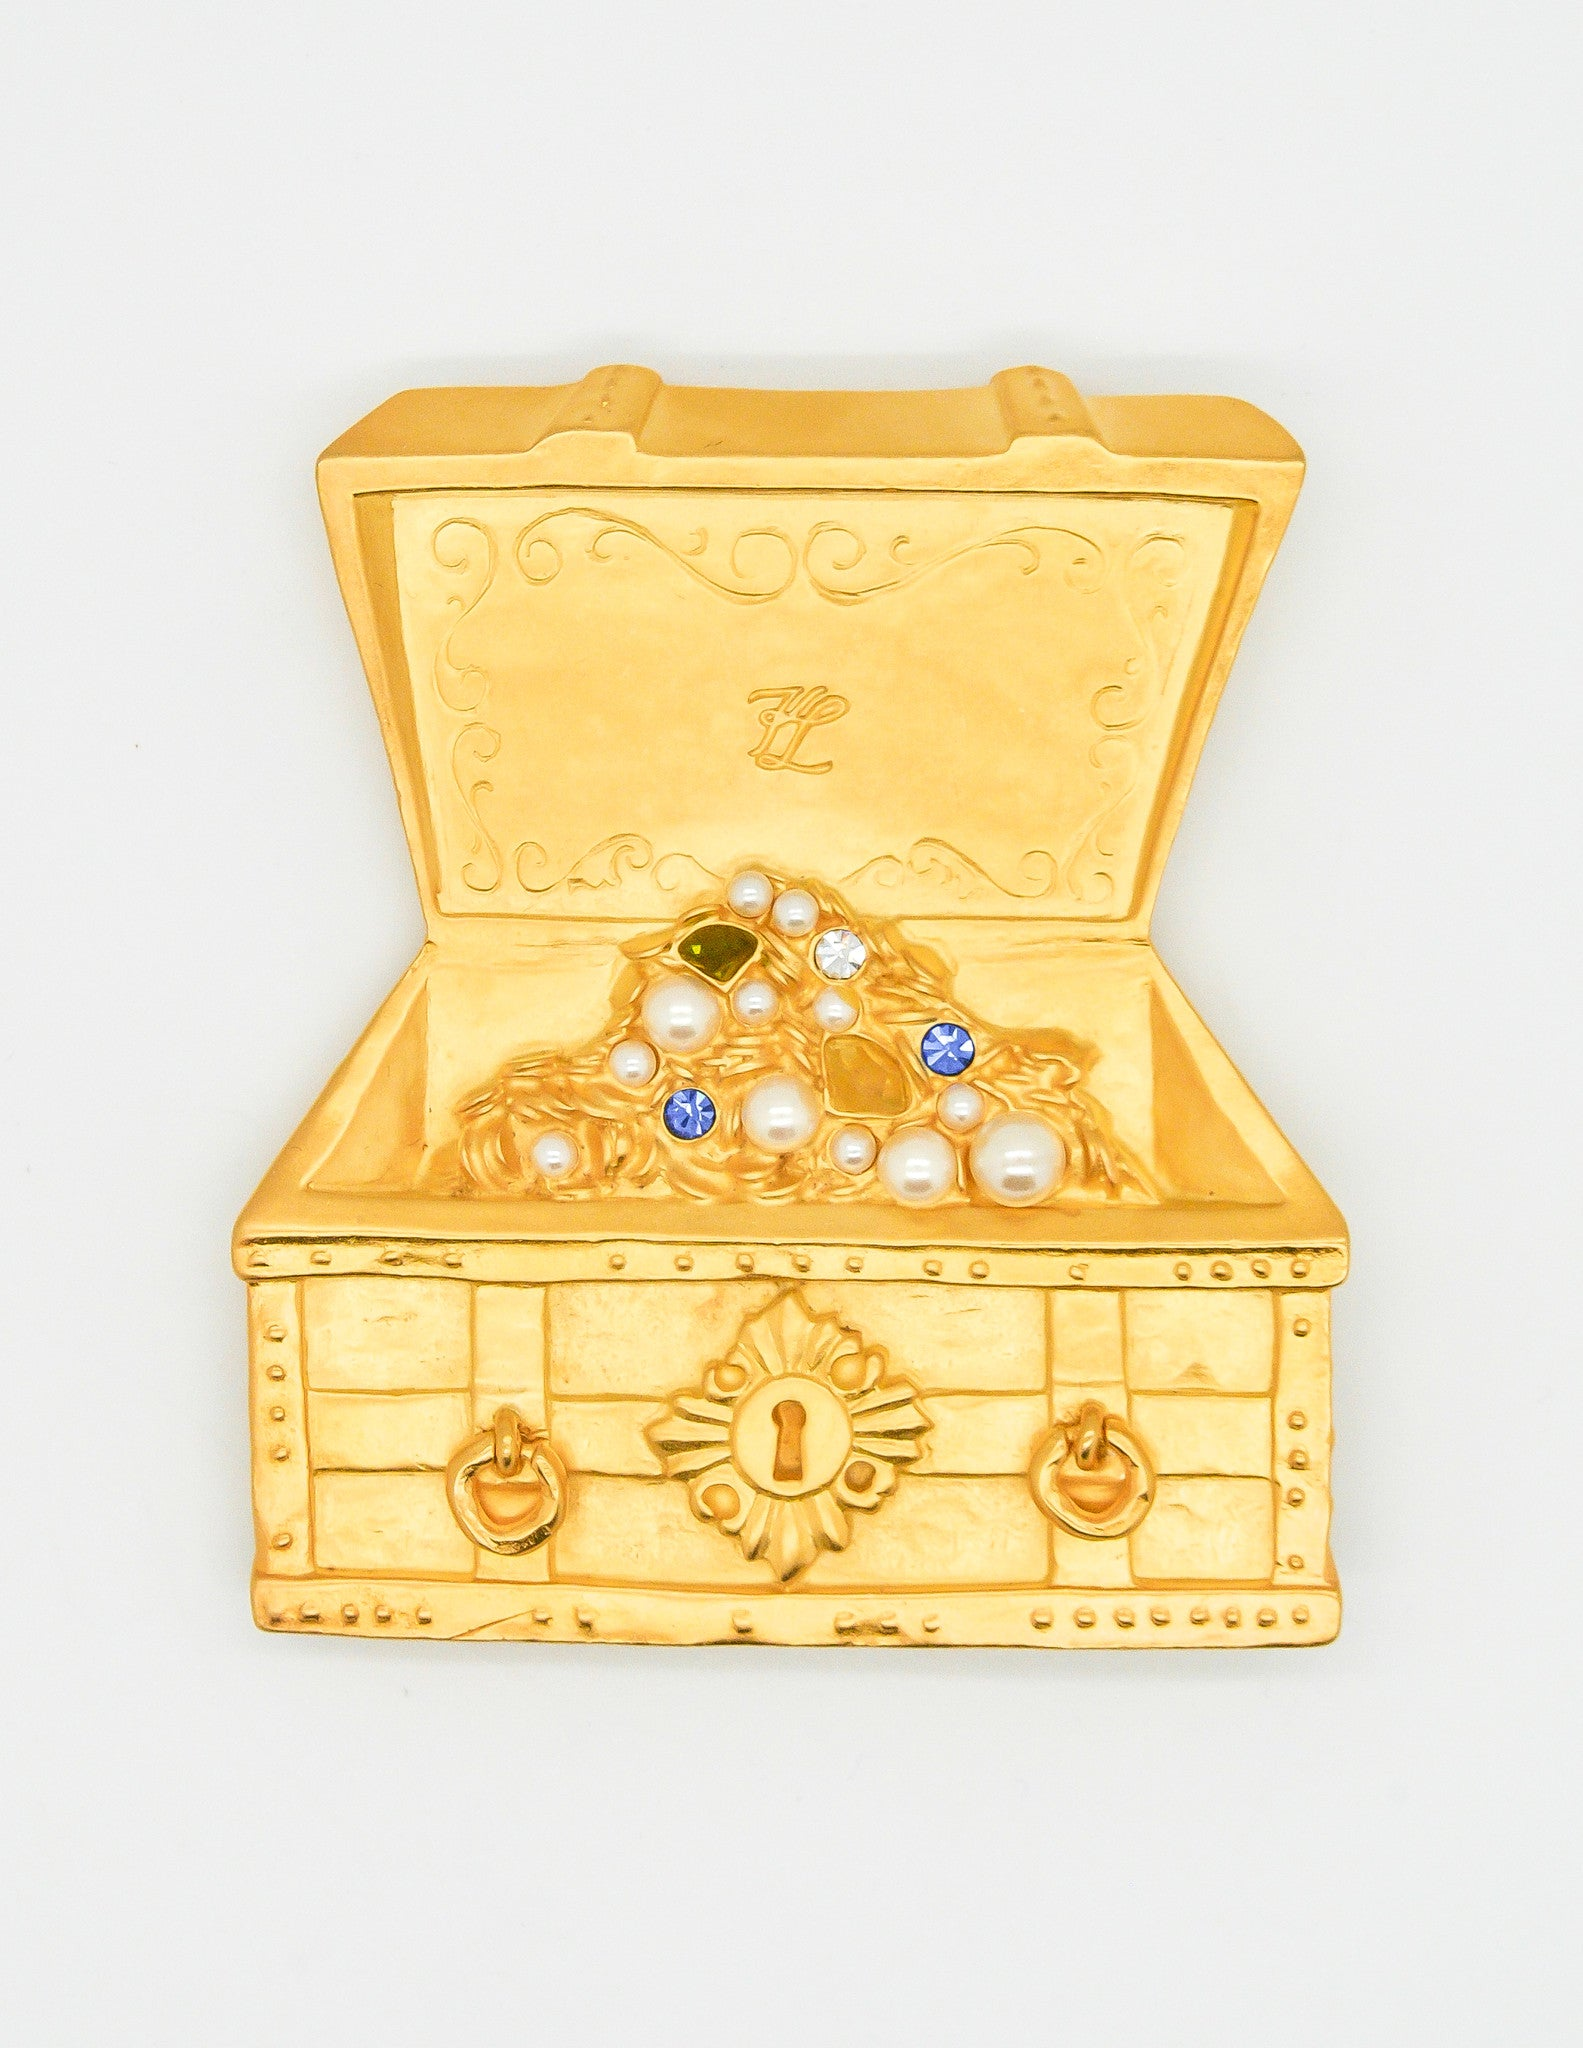 karl lagerfeld vintage treasure chest brooch from amarcord